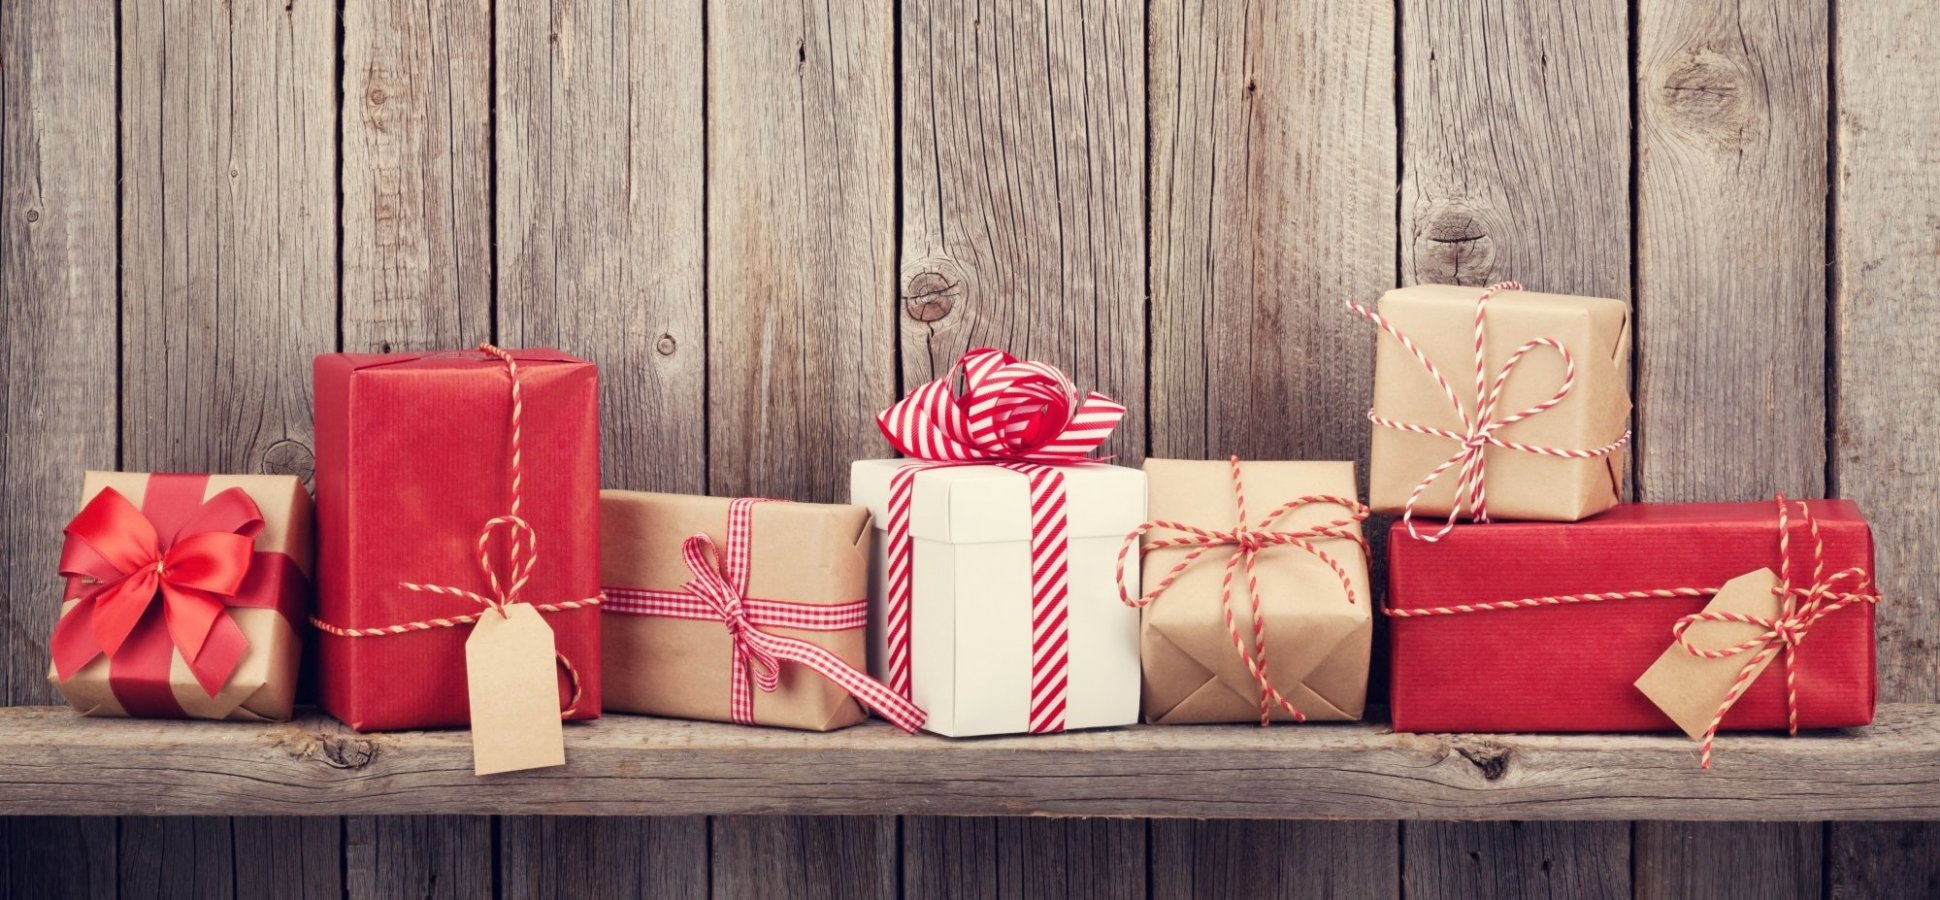 $20 christmas gift ideas 2019 business